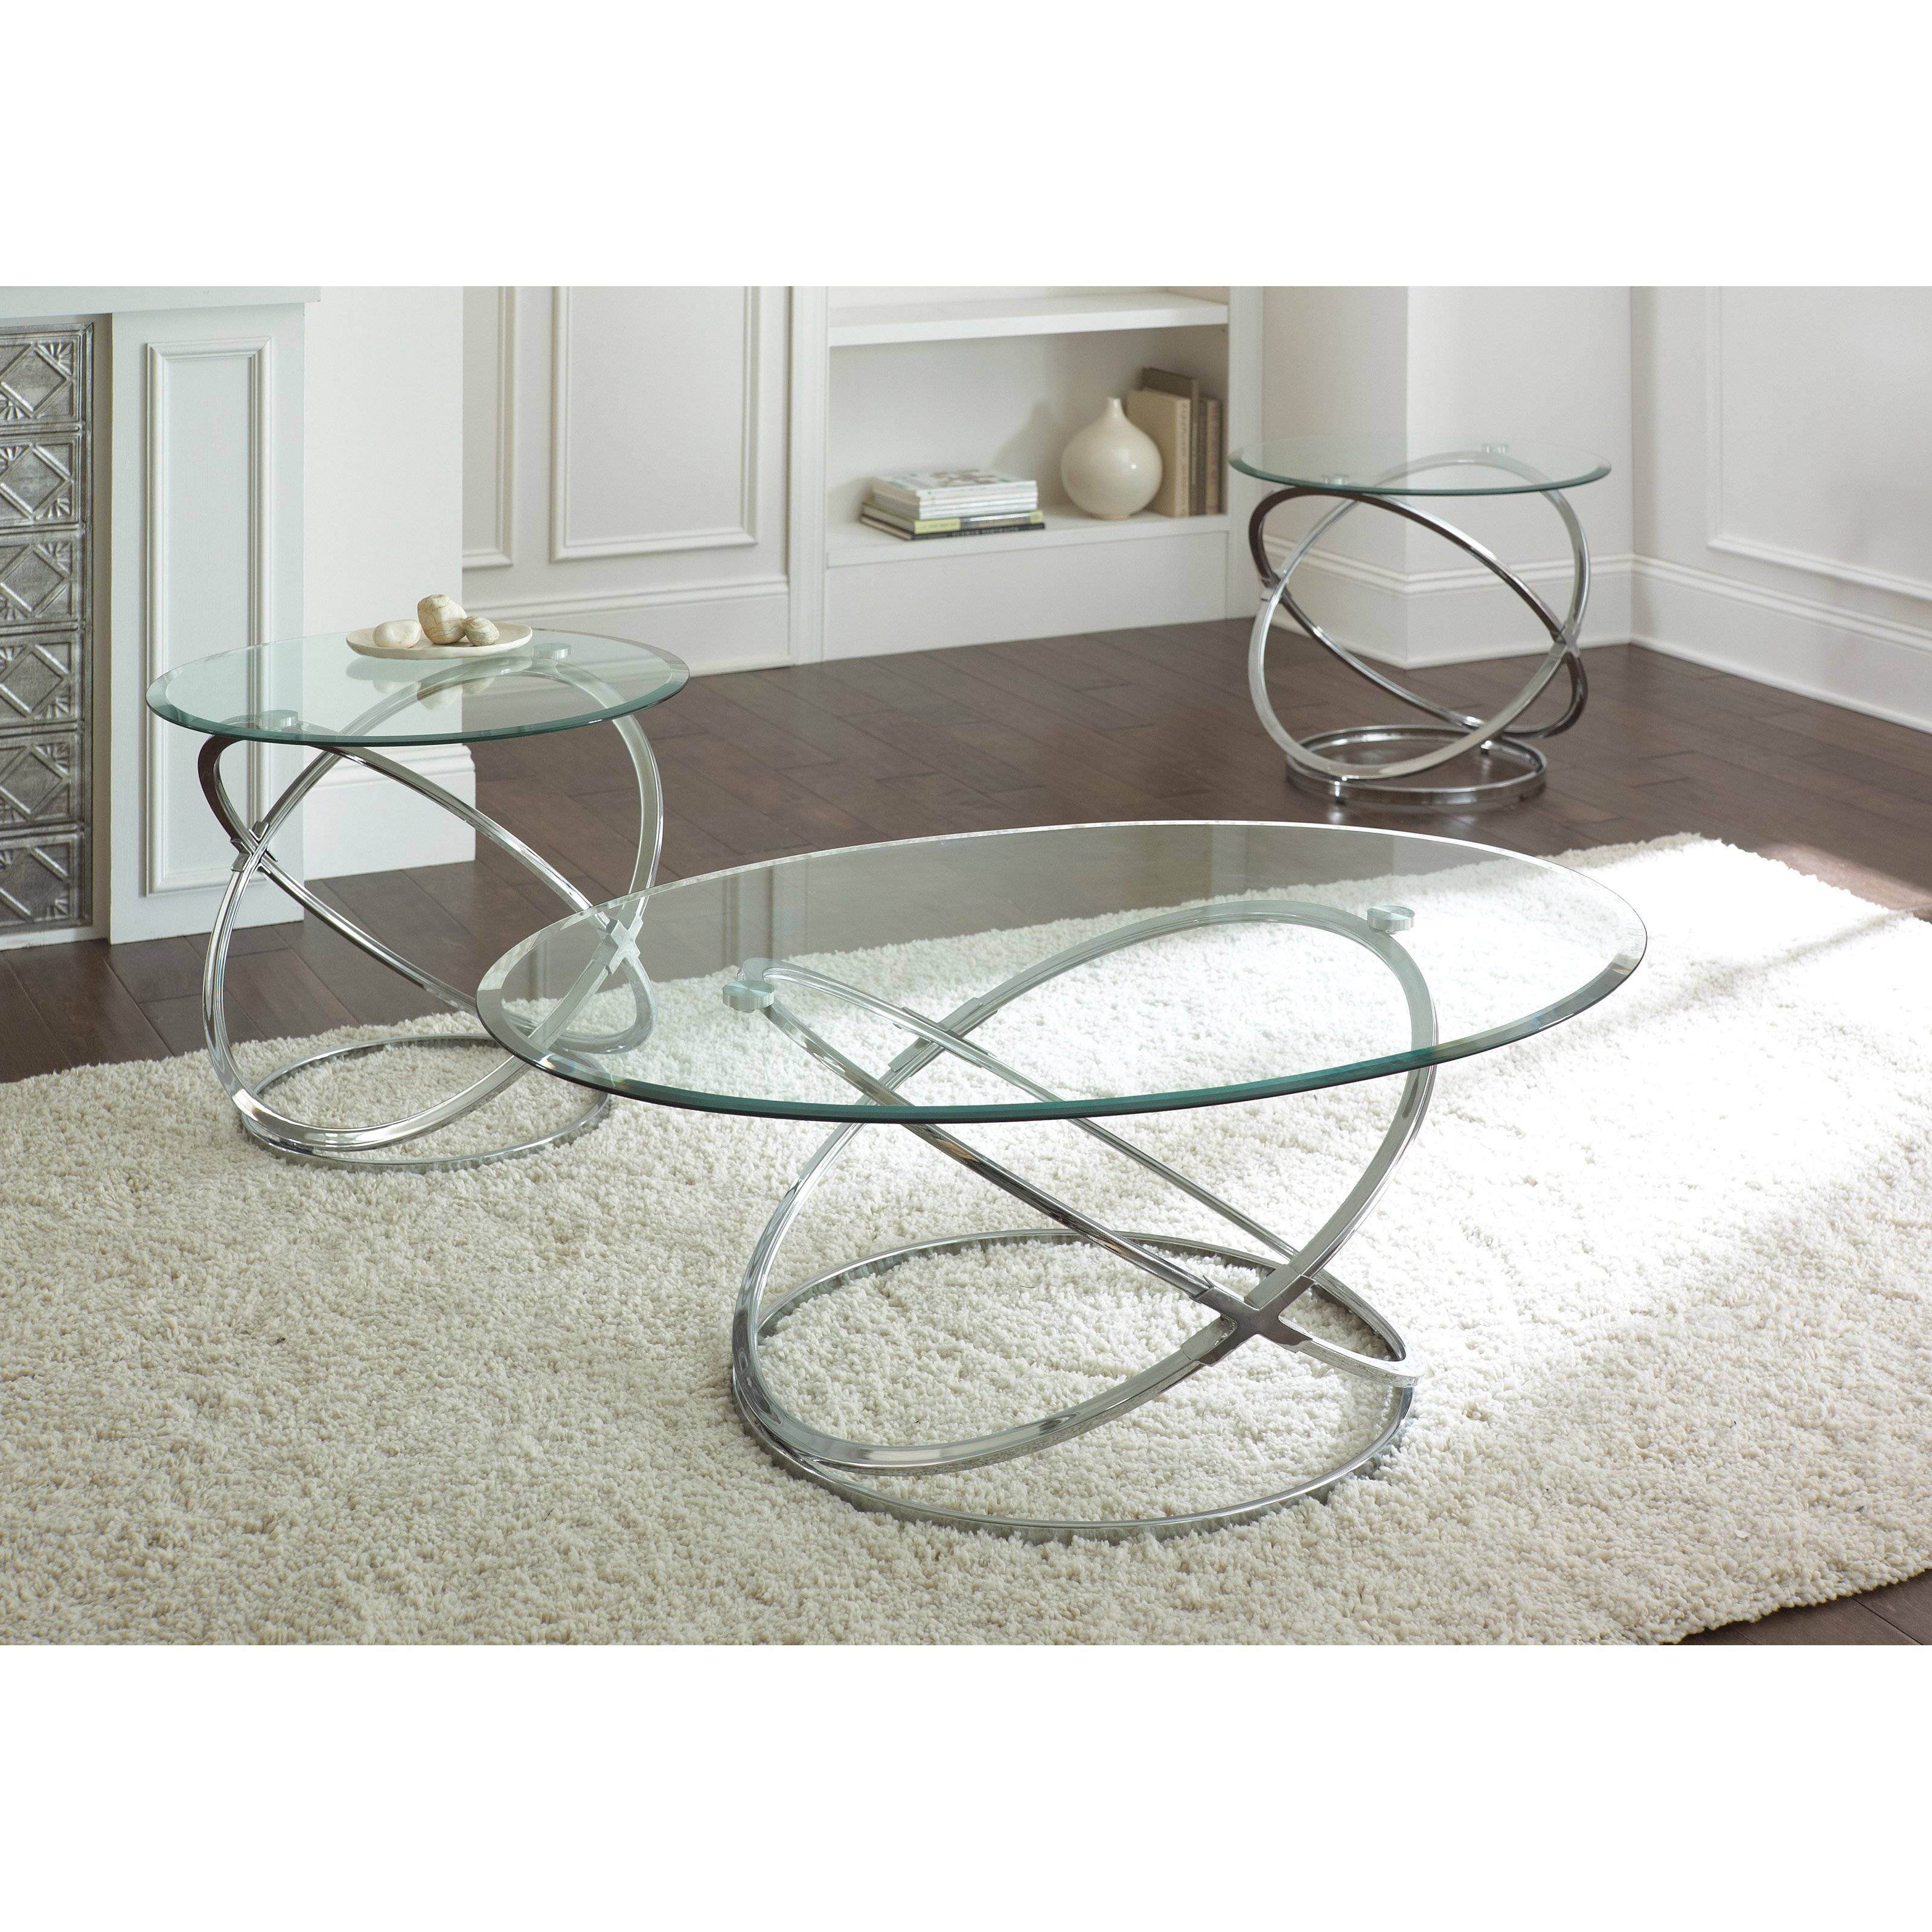 Steve Silver Orion Oval Chrome And Glass Coffee Table Set Pertaining To Oval Glass Coffee Tables (View 10 of 30)